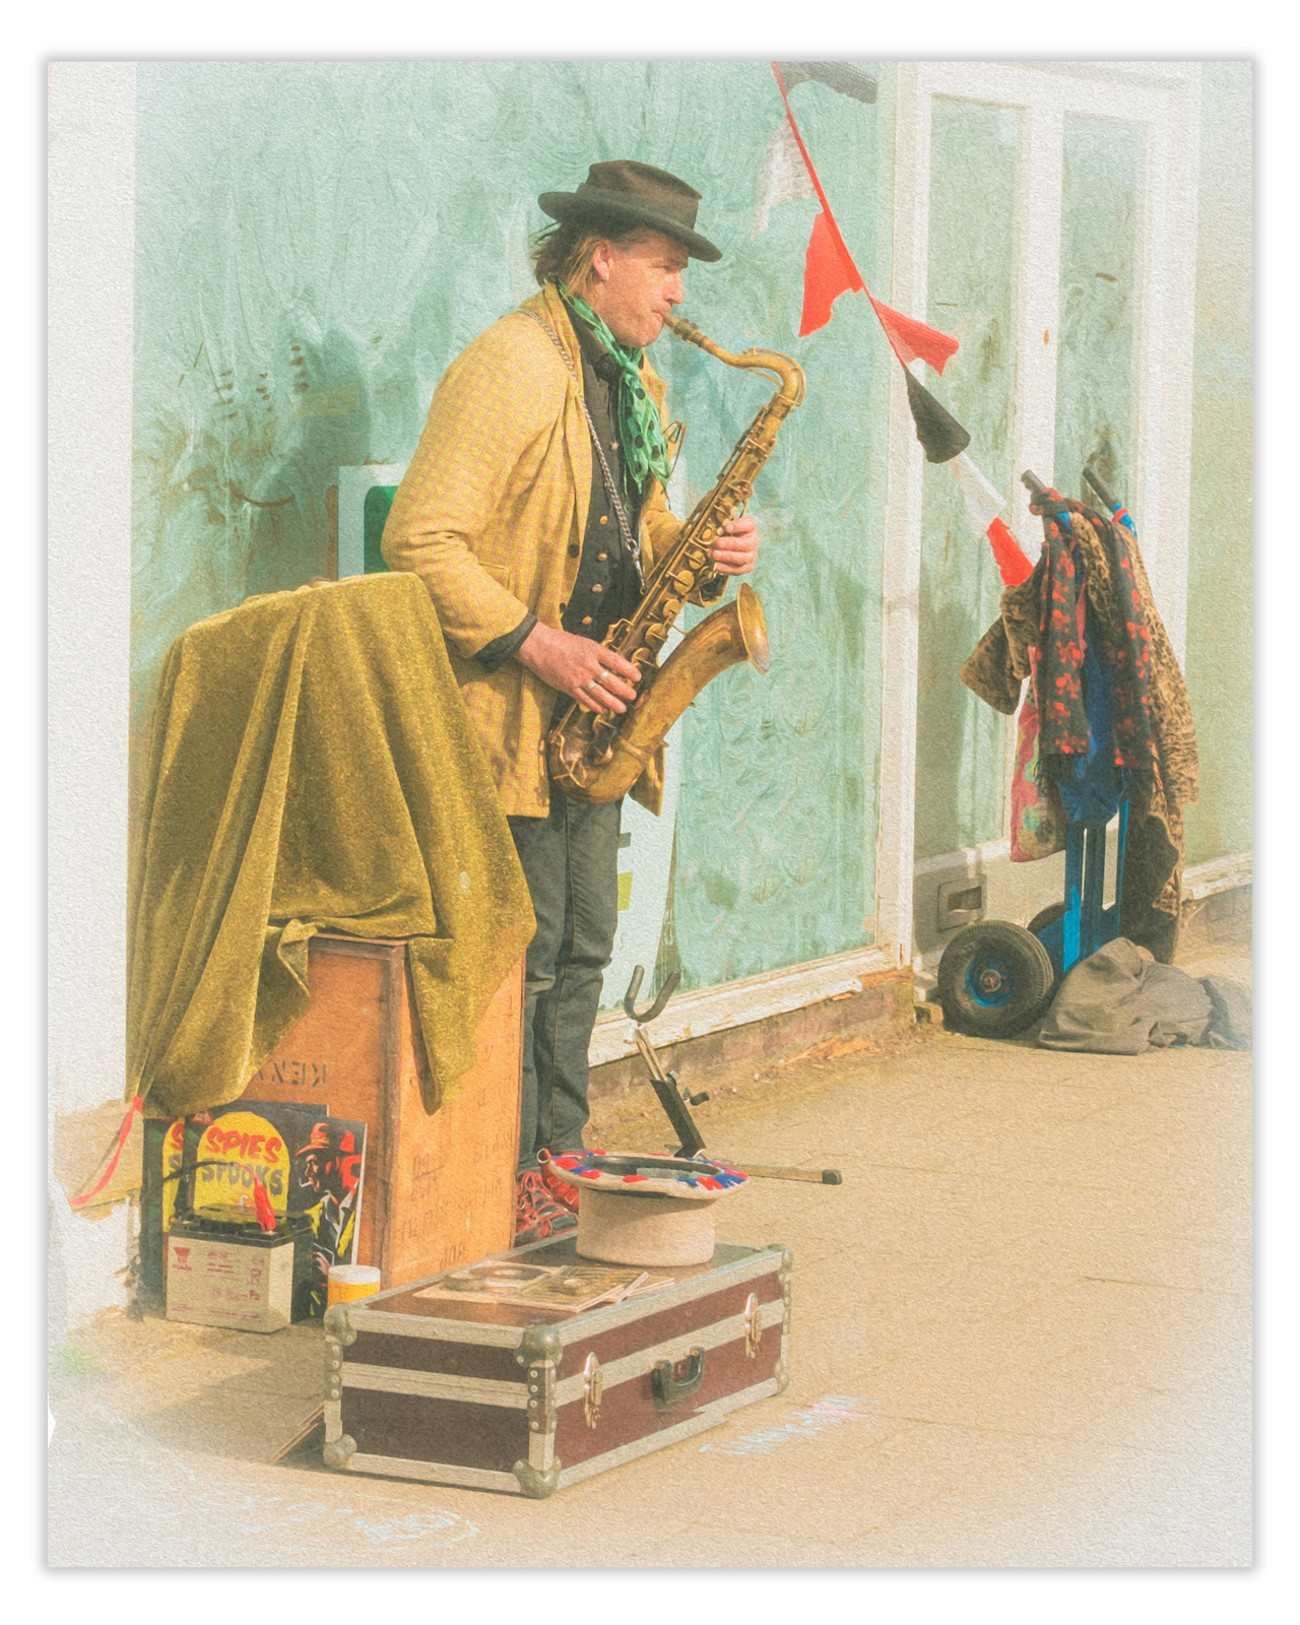 Saw this guy busking on Southwold High street. He had a 50's vibe so got creative in post.